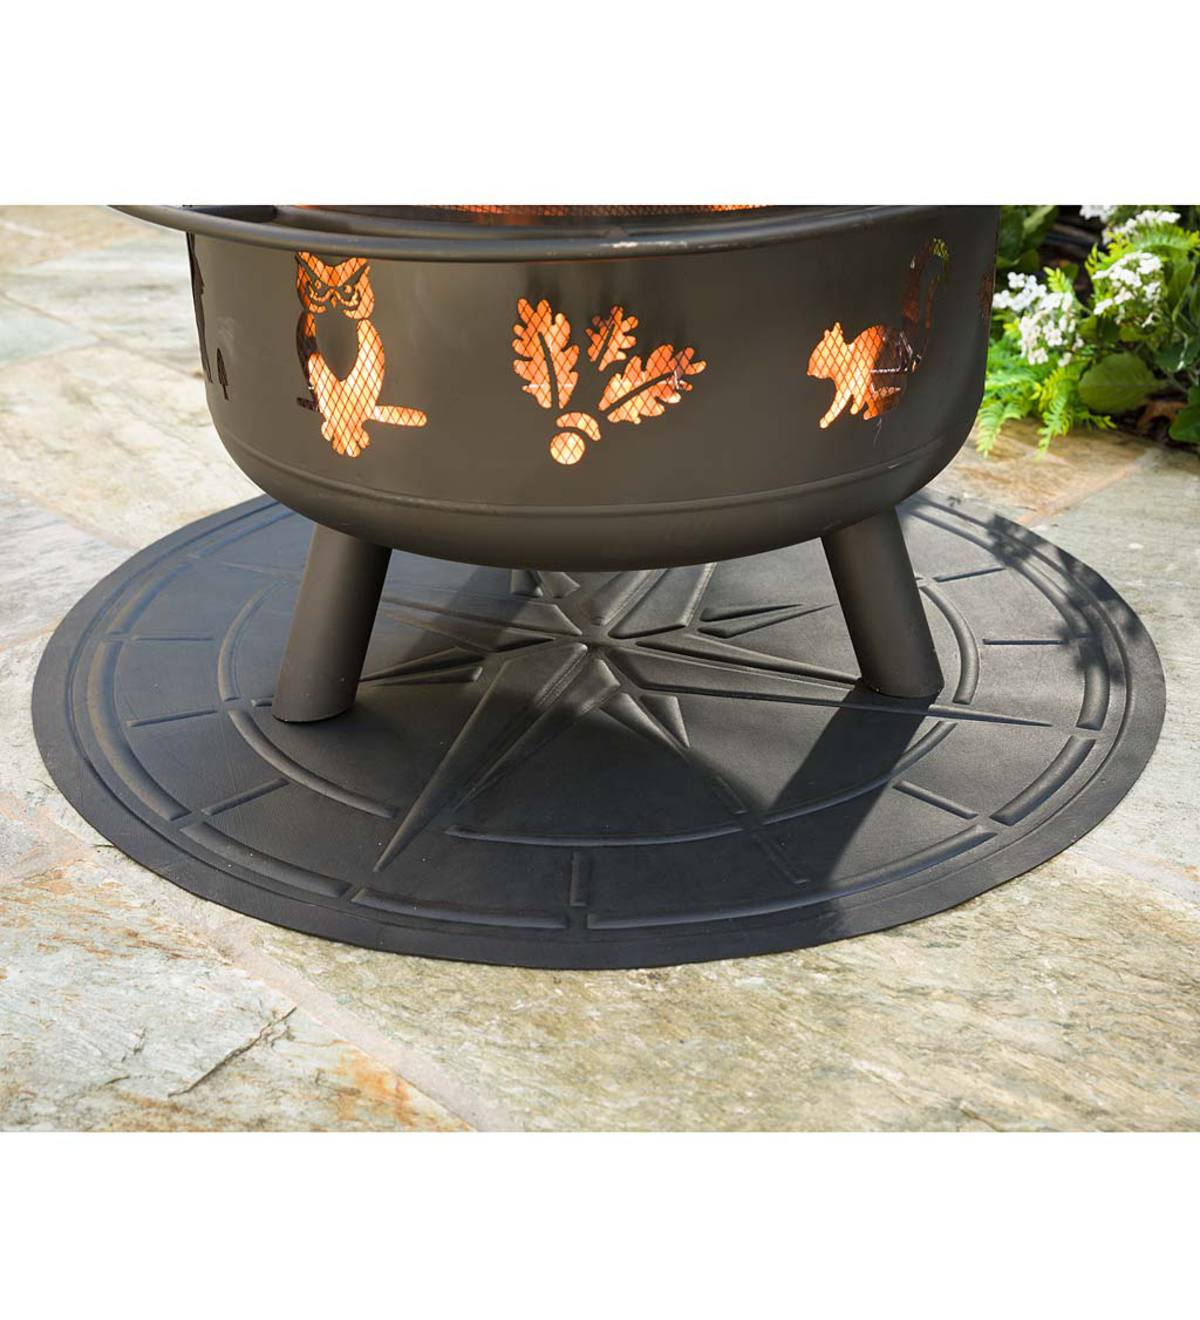 Flame Resistant Protective Mat For Fire Pit And Grill Compass Design Plowhearth